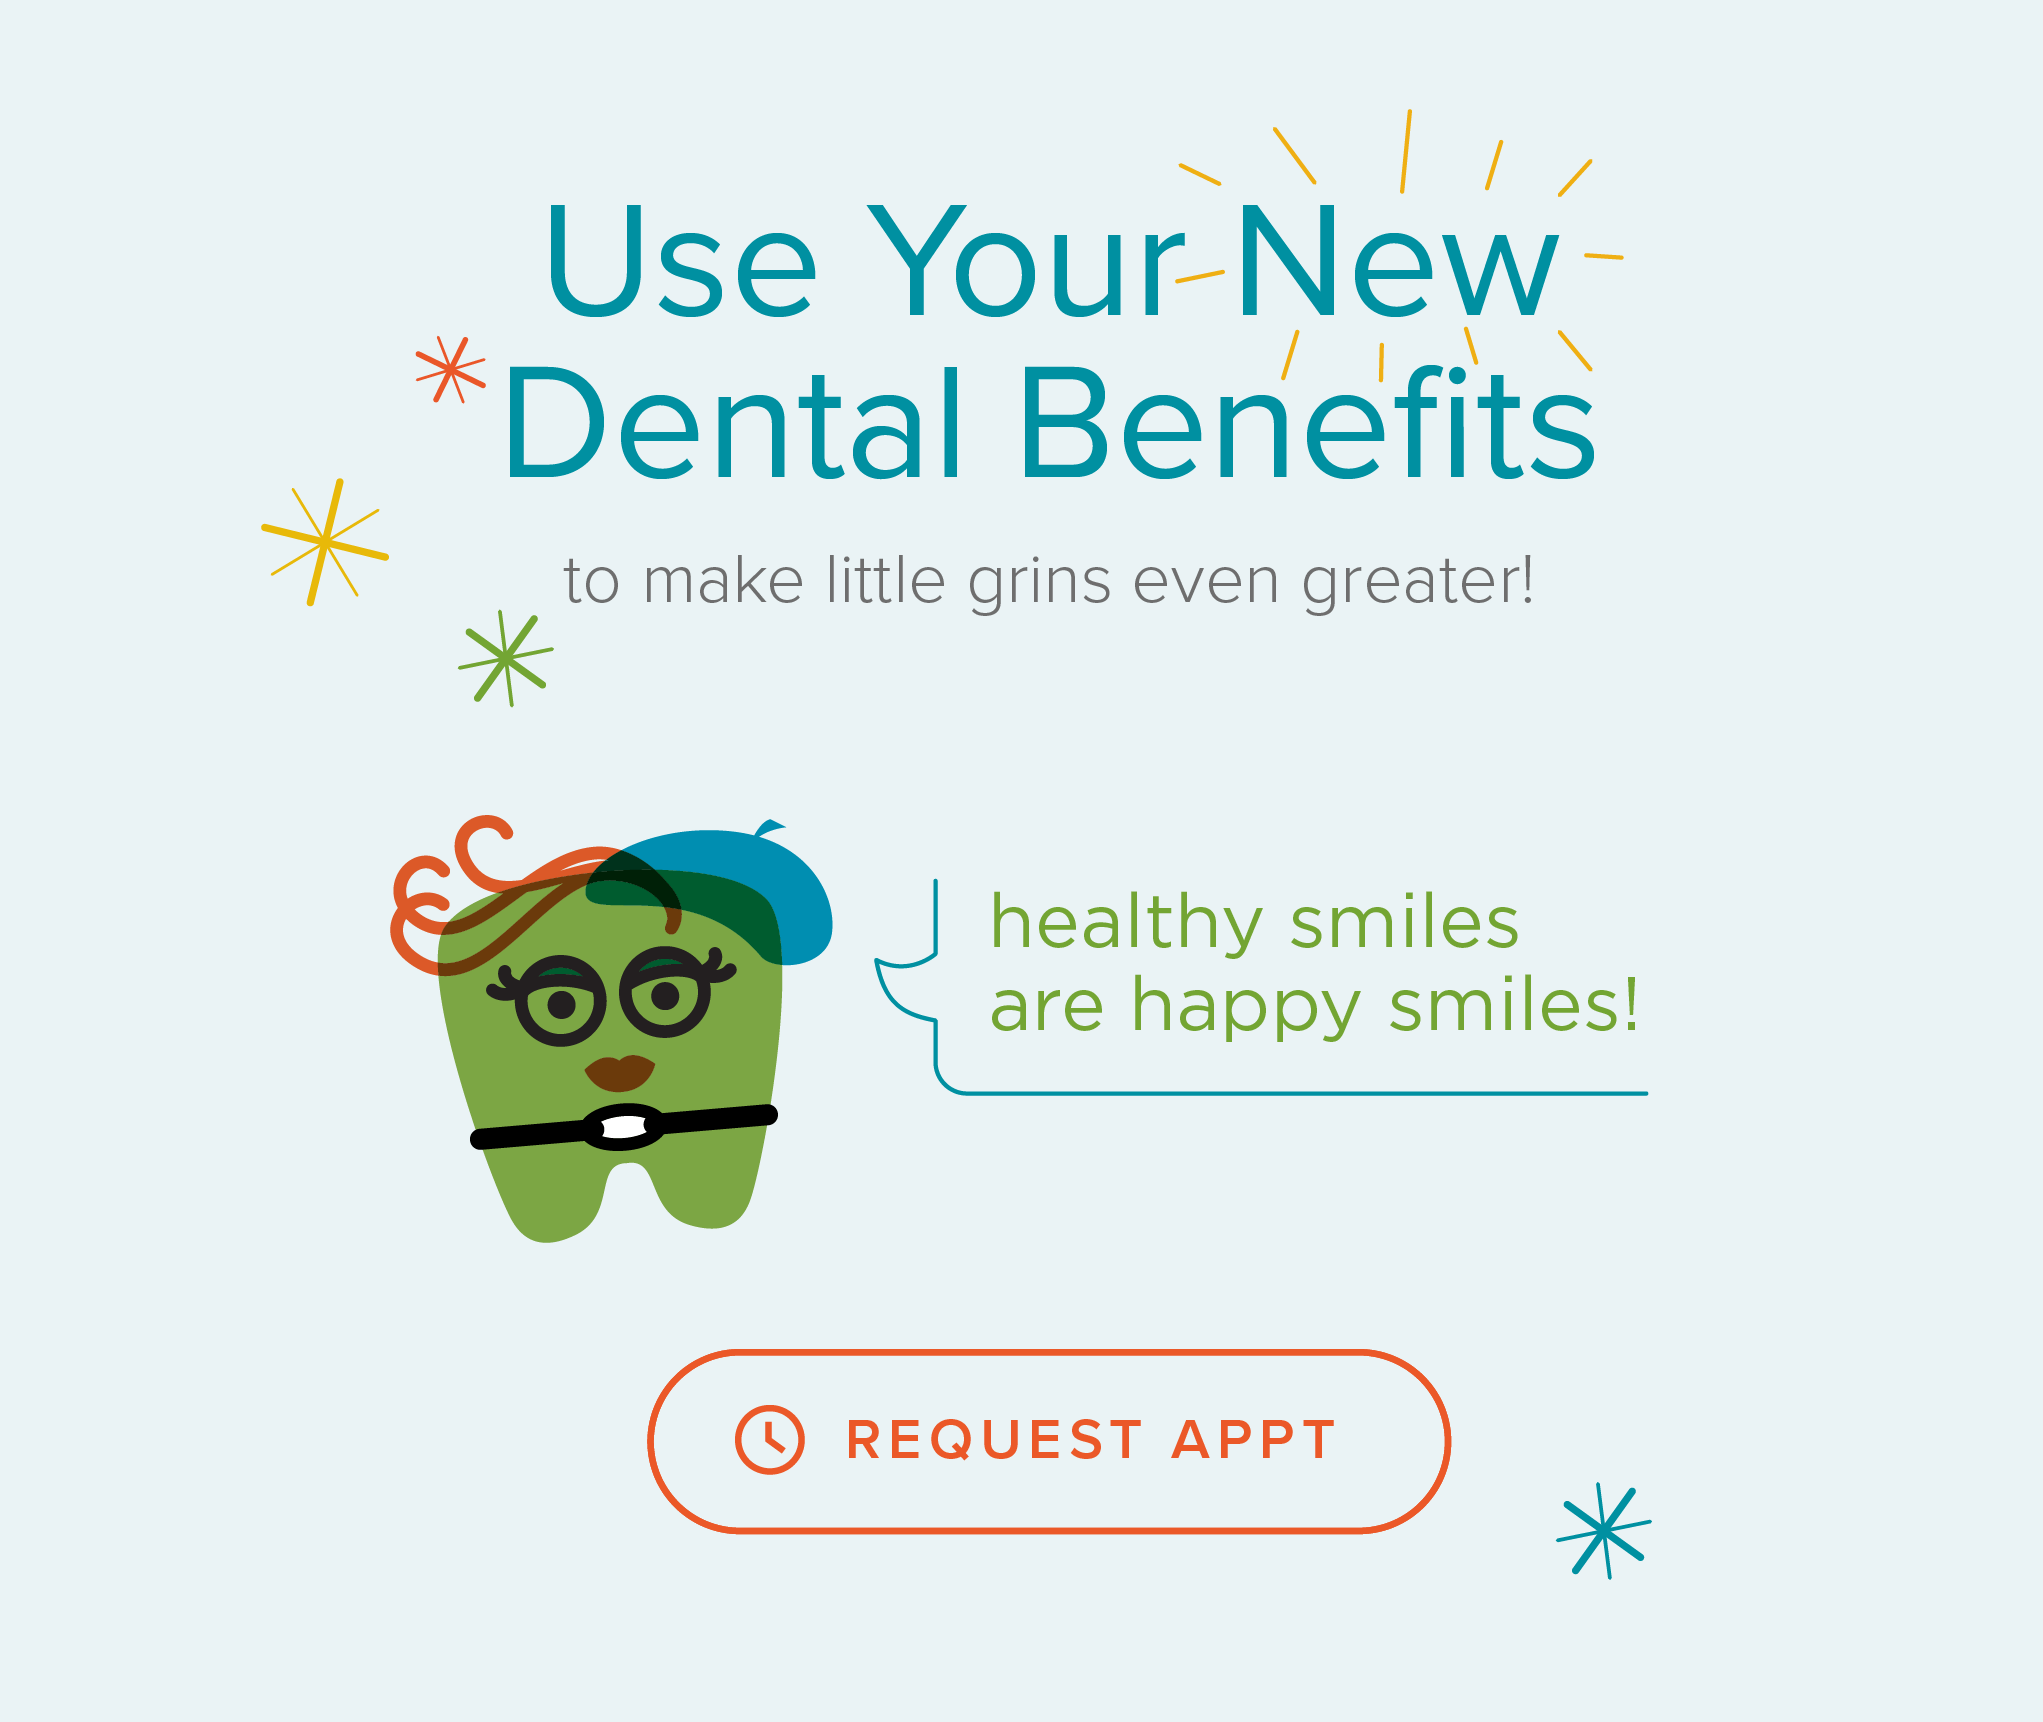 Every Kid's Dentist & Orthodontics - Use Your New Dental Benefits